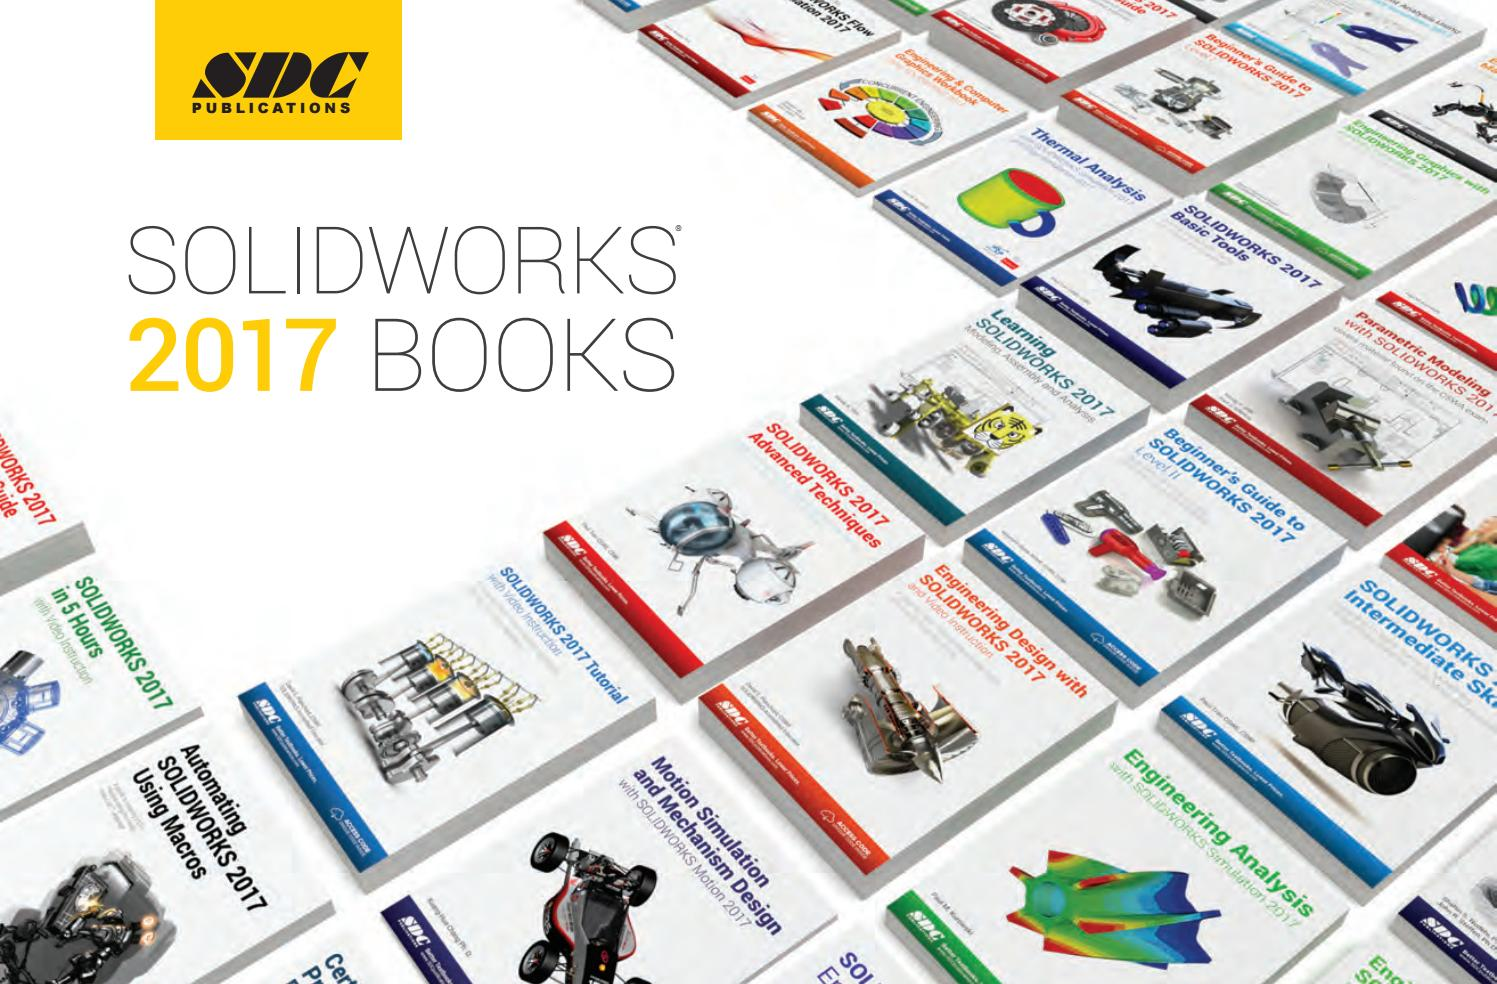 Sdc Solidworks 2017 By Scientific Books Information Issuu